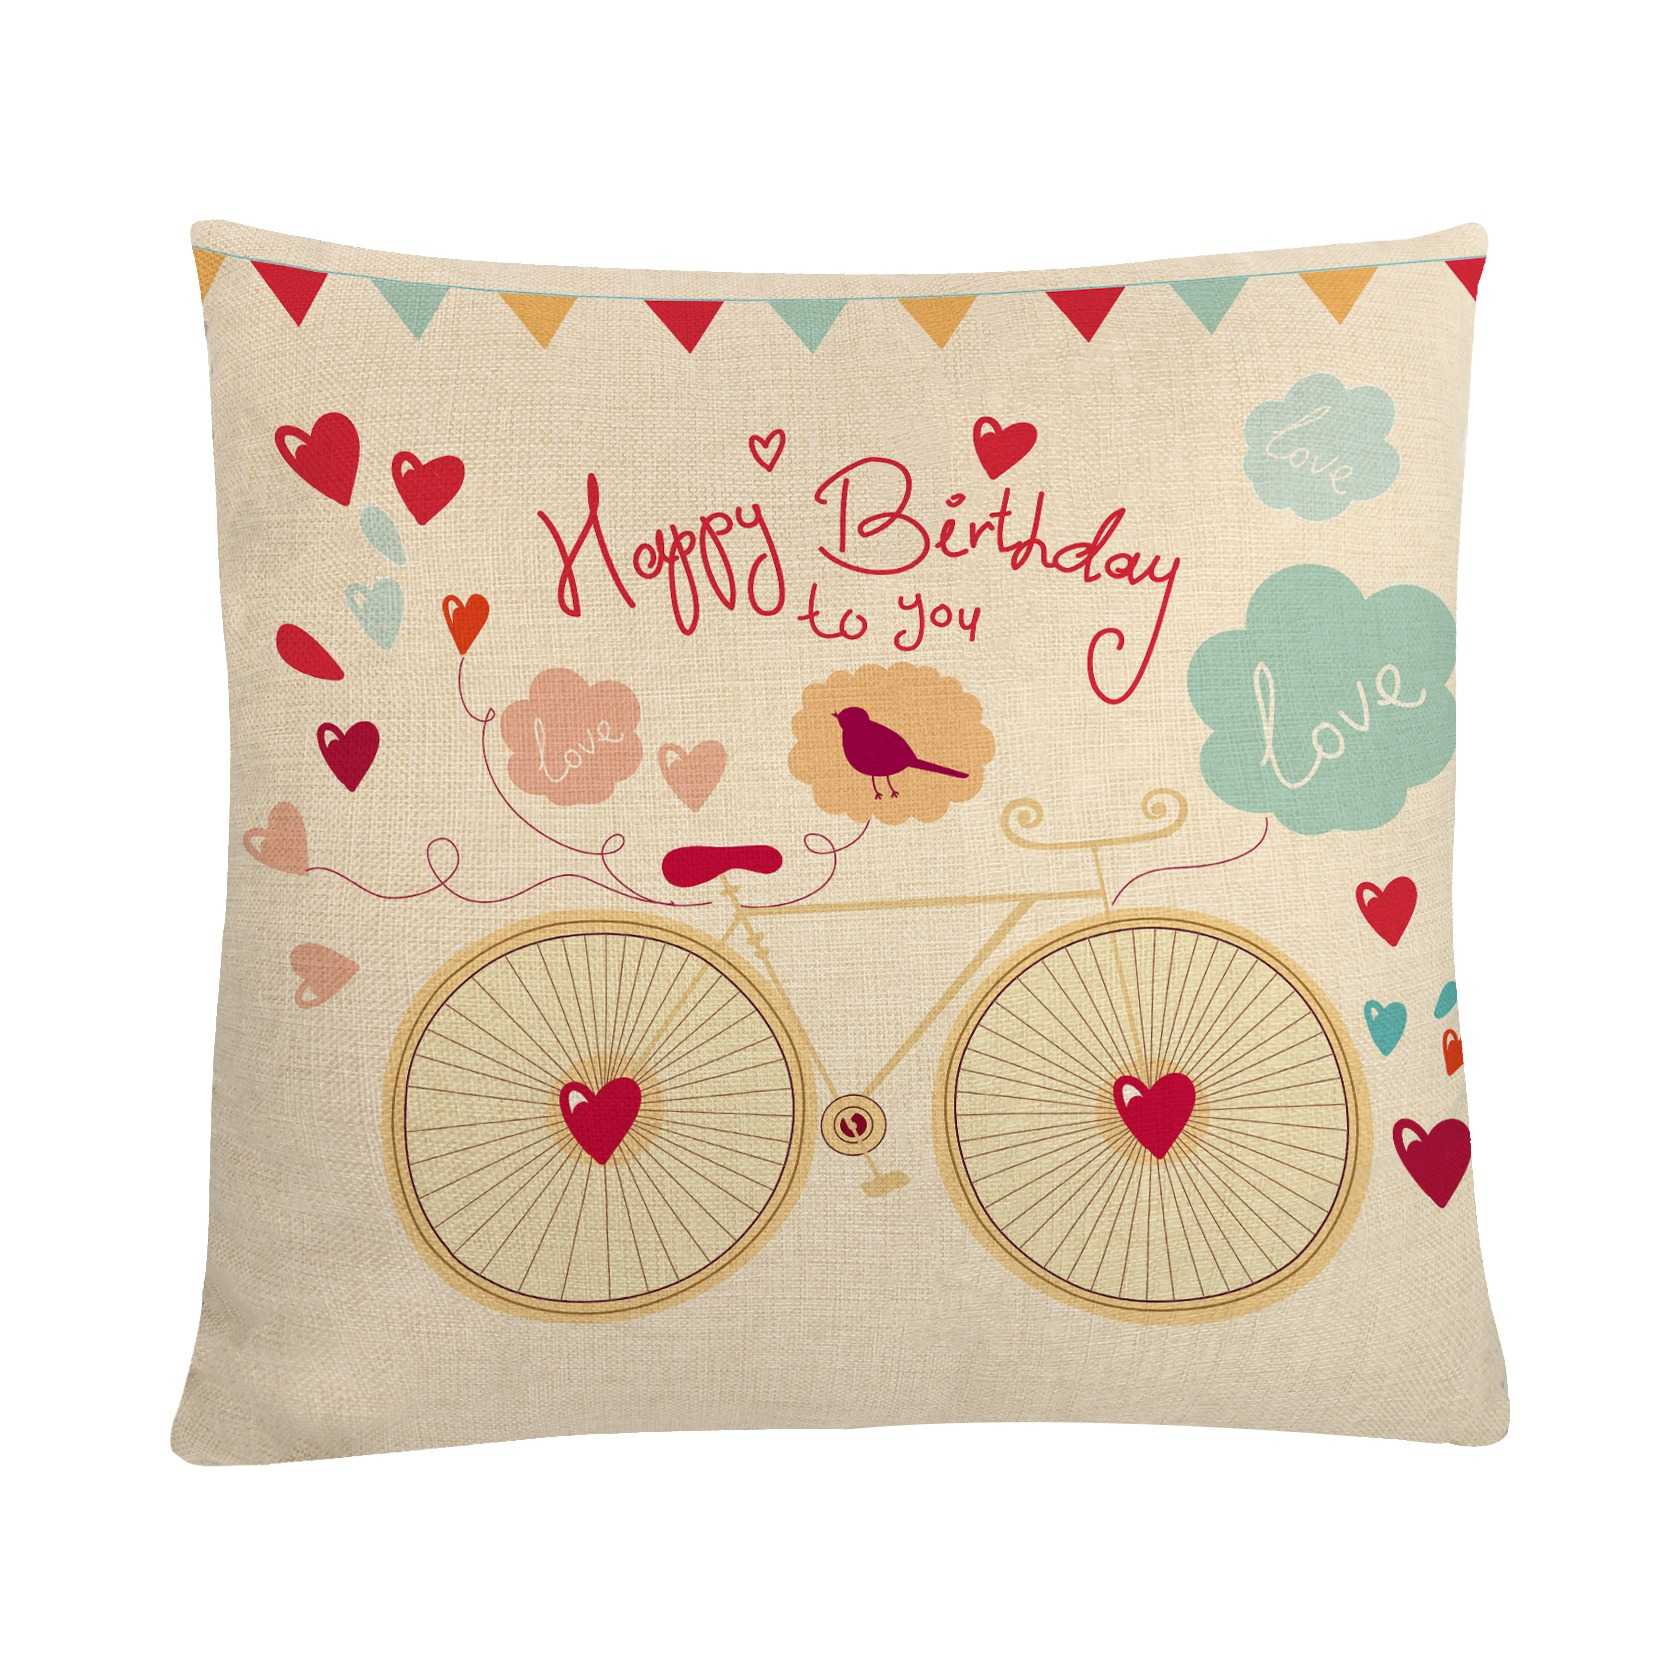 Decorative Cushion Cover 45*45cm Happy Birthday Letters Printed Pillowcase Cotton Linen Throw Pillow For Sofa Chair Decoration